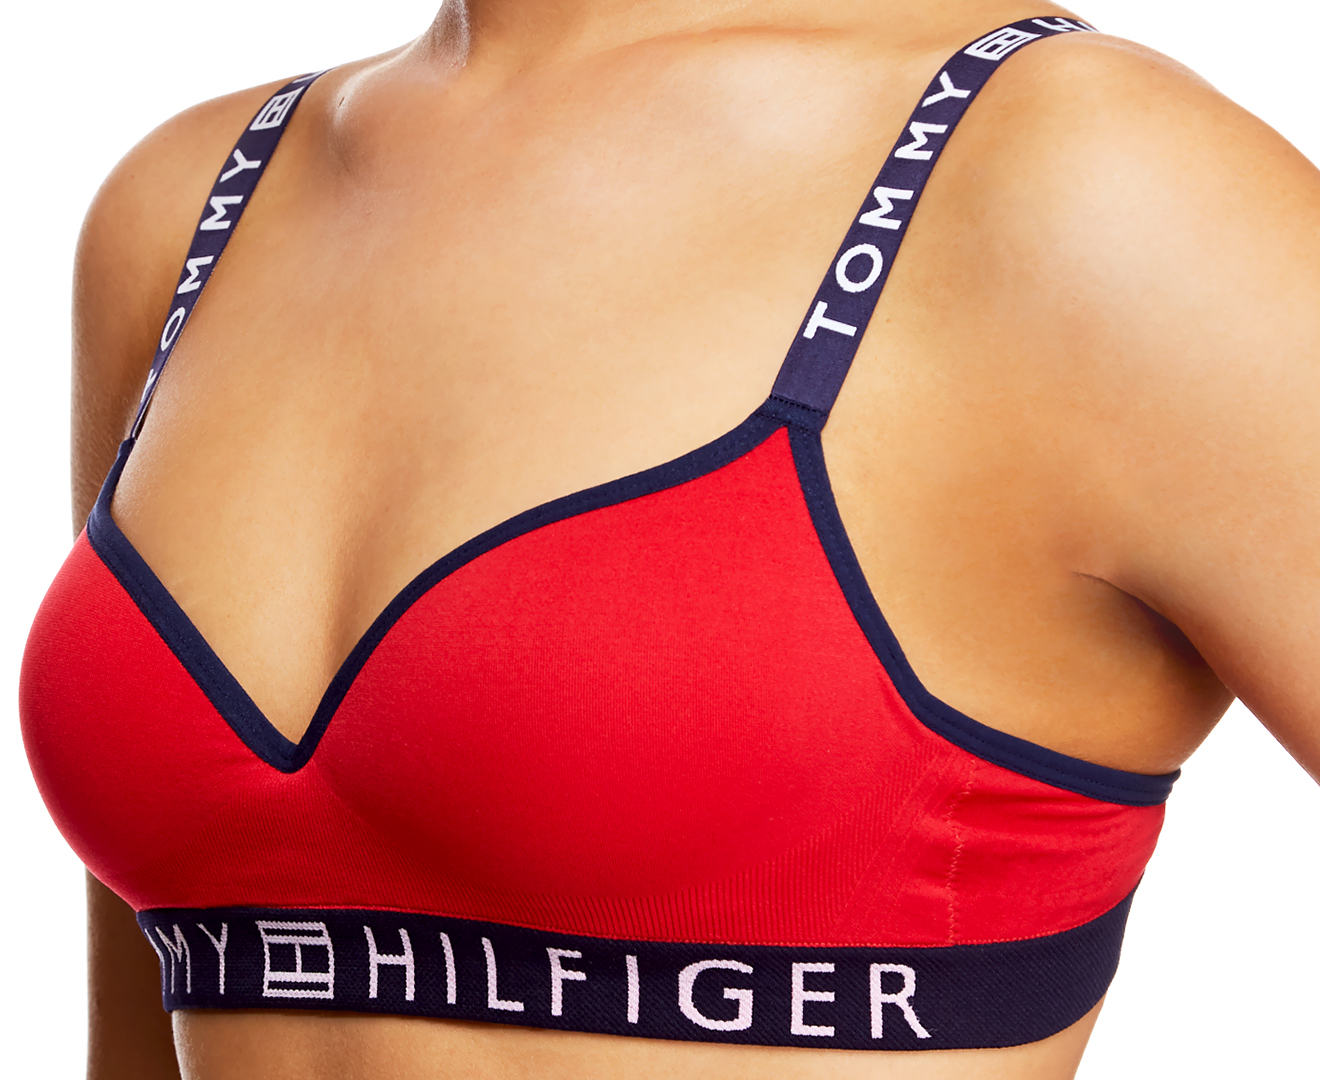 tommy hilfiger women 39 s seamless logo padded bra tang red scoopon shopping. Black Bedroom Furniture Sets. Home Design Ideas